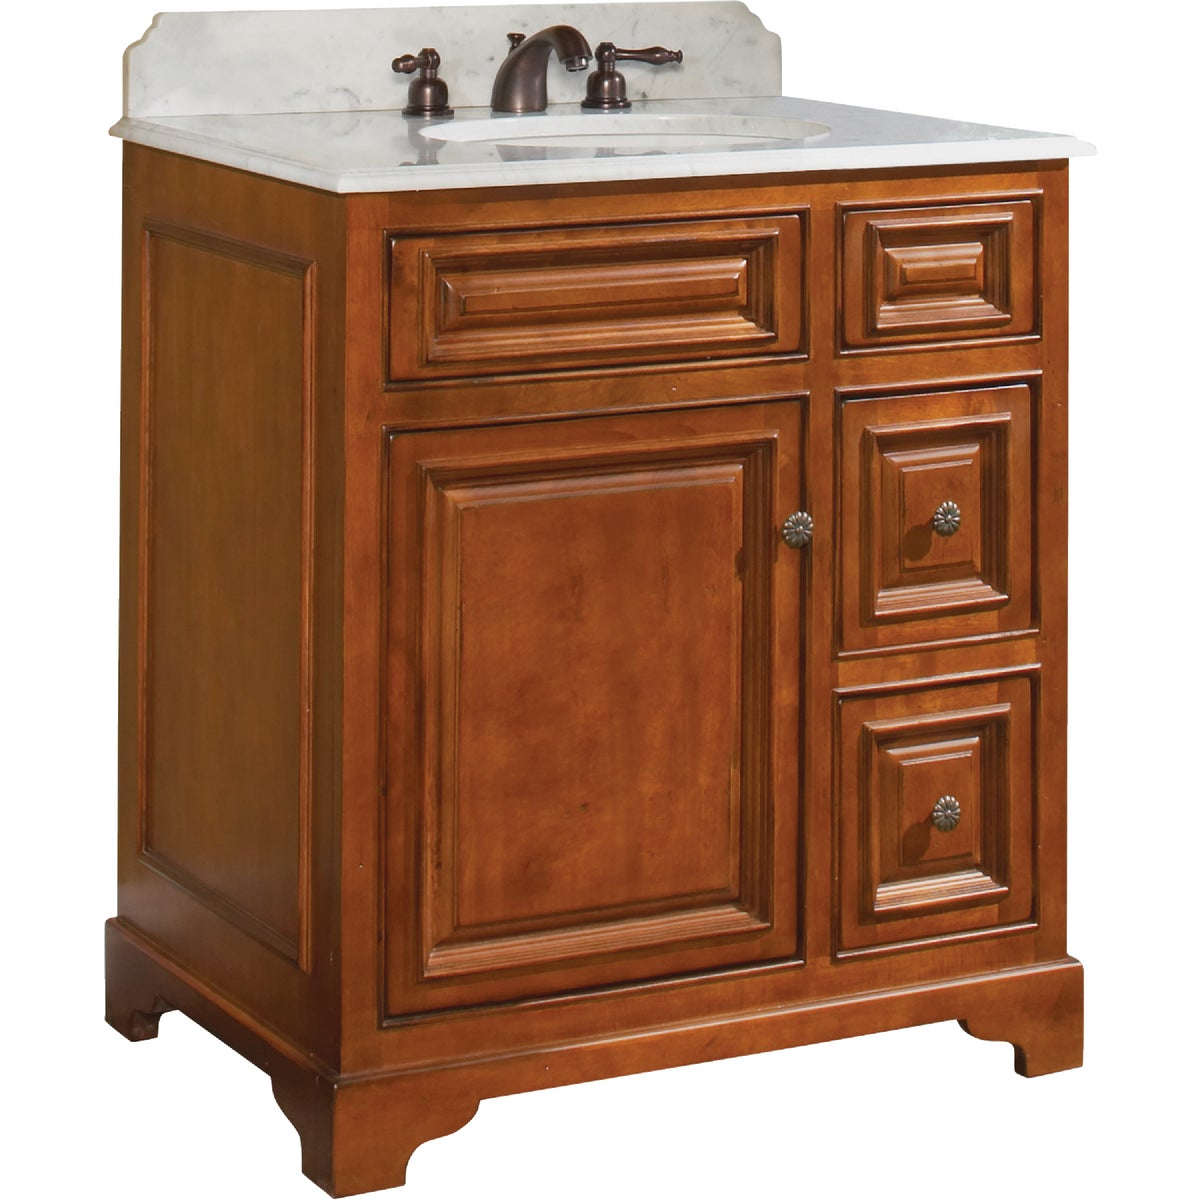 30X21 CAMBRIAN VANITY - CB3021D by Sunnywood Products